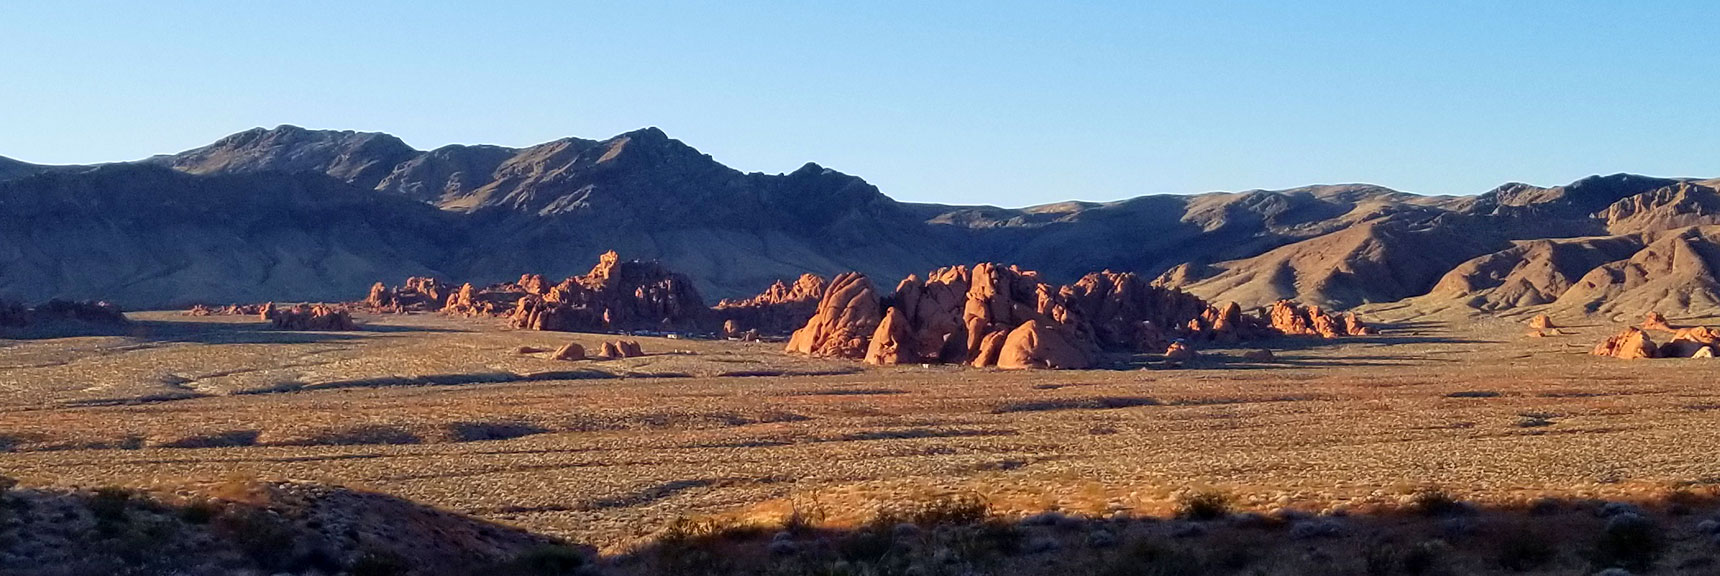 Looking Back Toward Atlatl Rock from the Pass on Prospect Trail in Valley of Fire State Park, Nevada